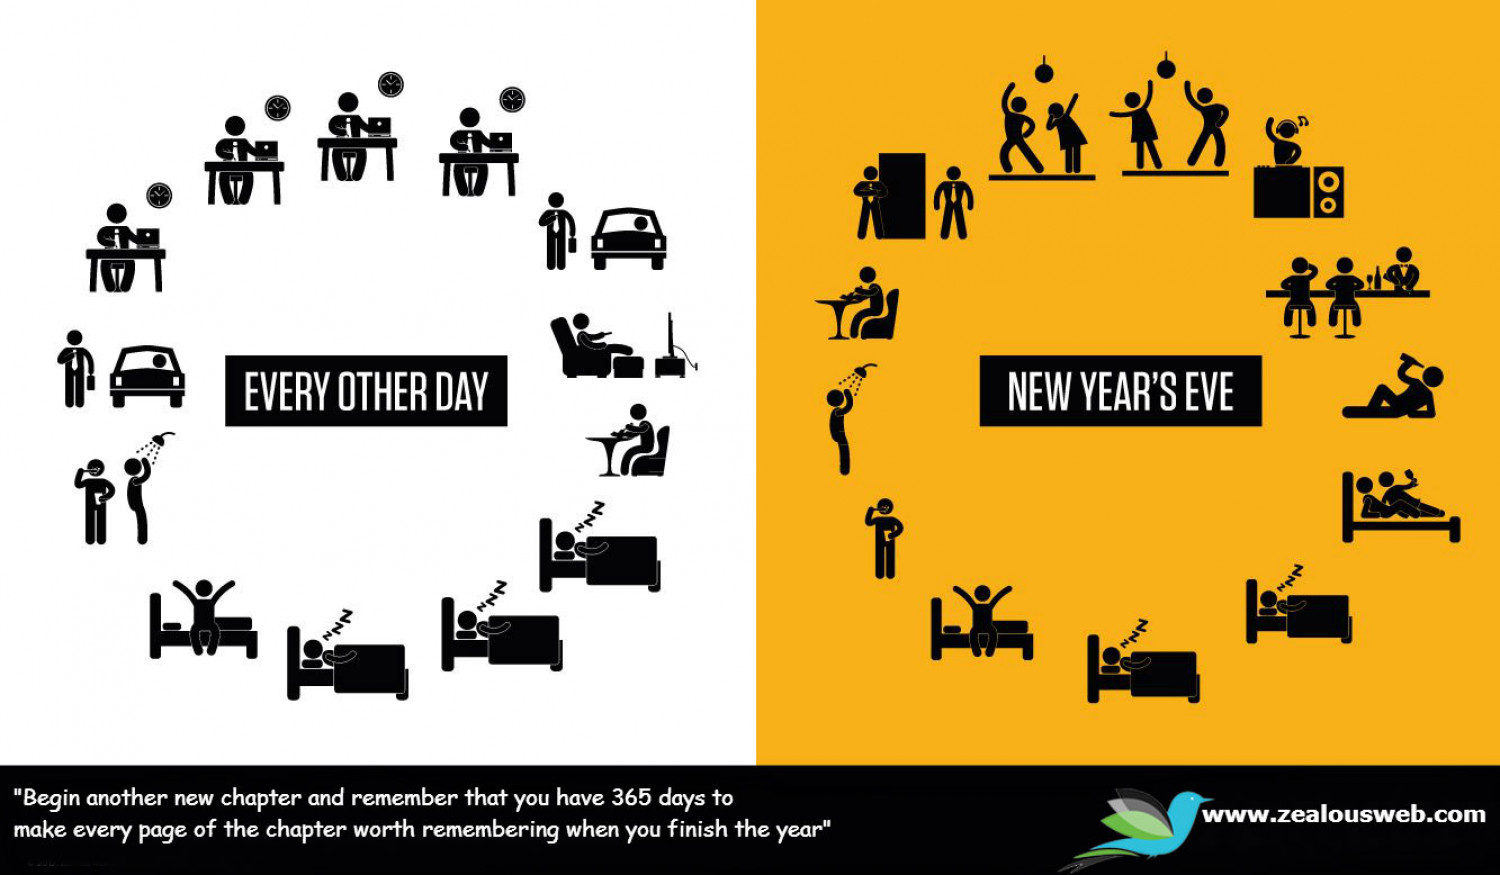 Let's not spend New Year's Eve trying to figure out where to spend New Year's Eve. Infographic